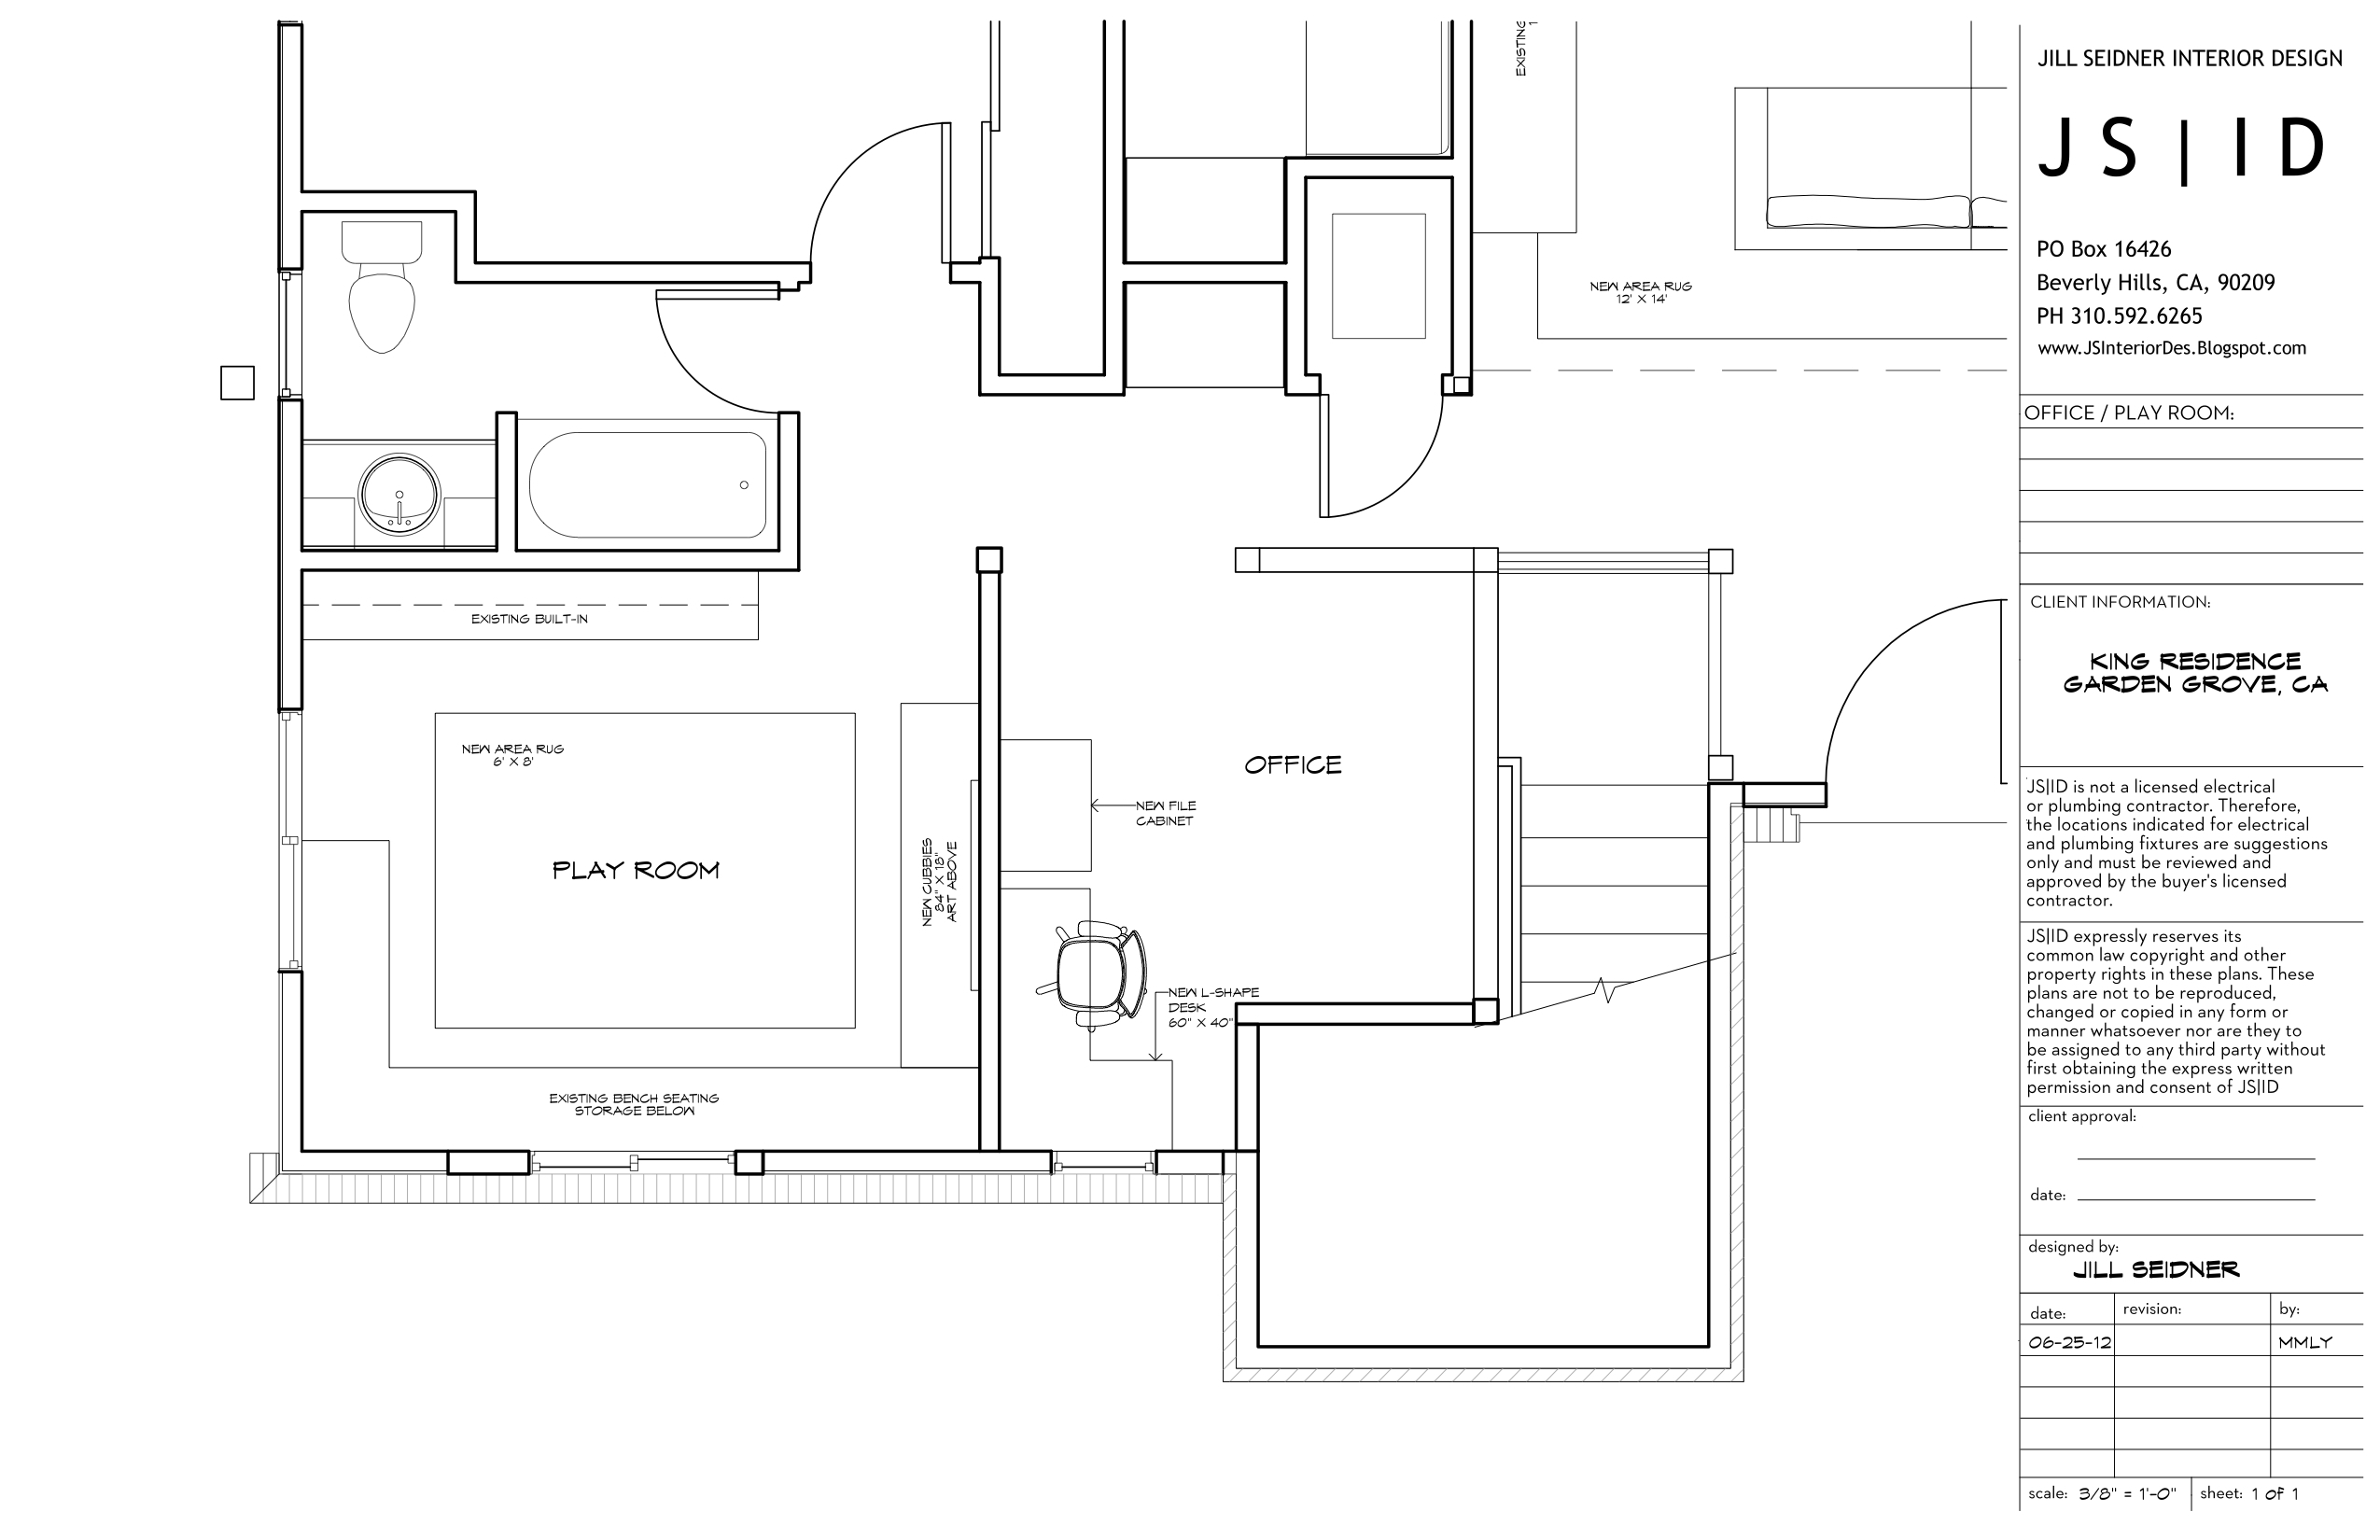 Garden Grove, Ca Residence, Office & Playroom Furniture Floor Plan throughout Best Layout For Apartments In Garden Grove Ca Design Ideas